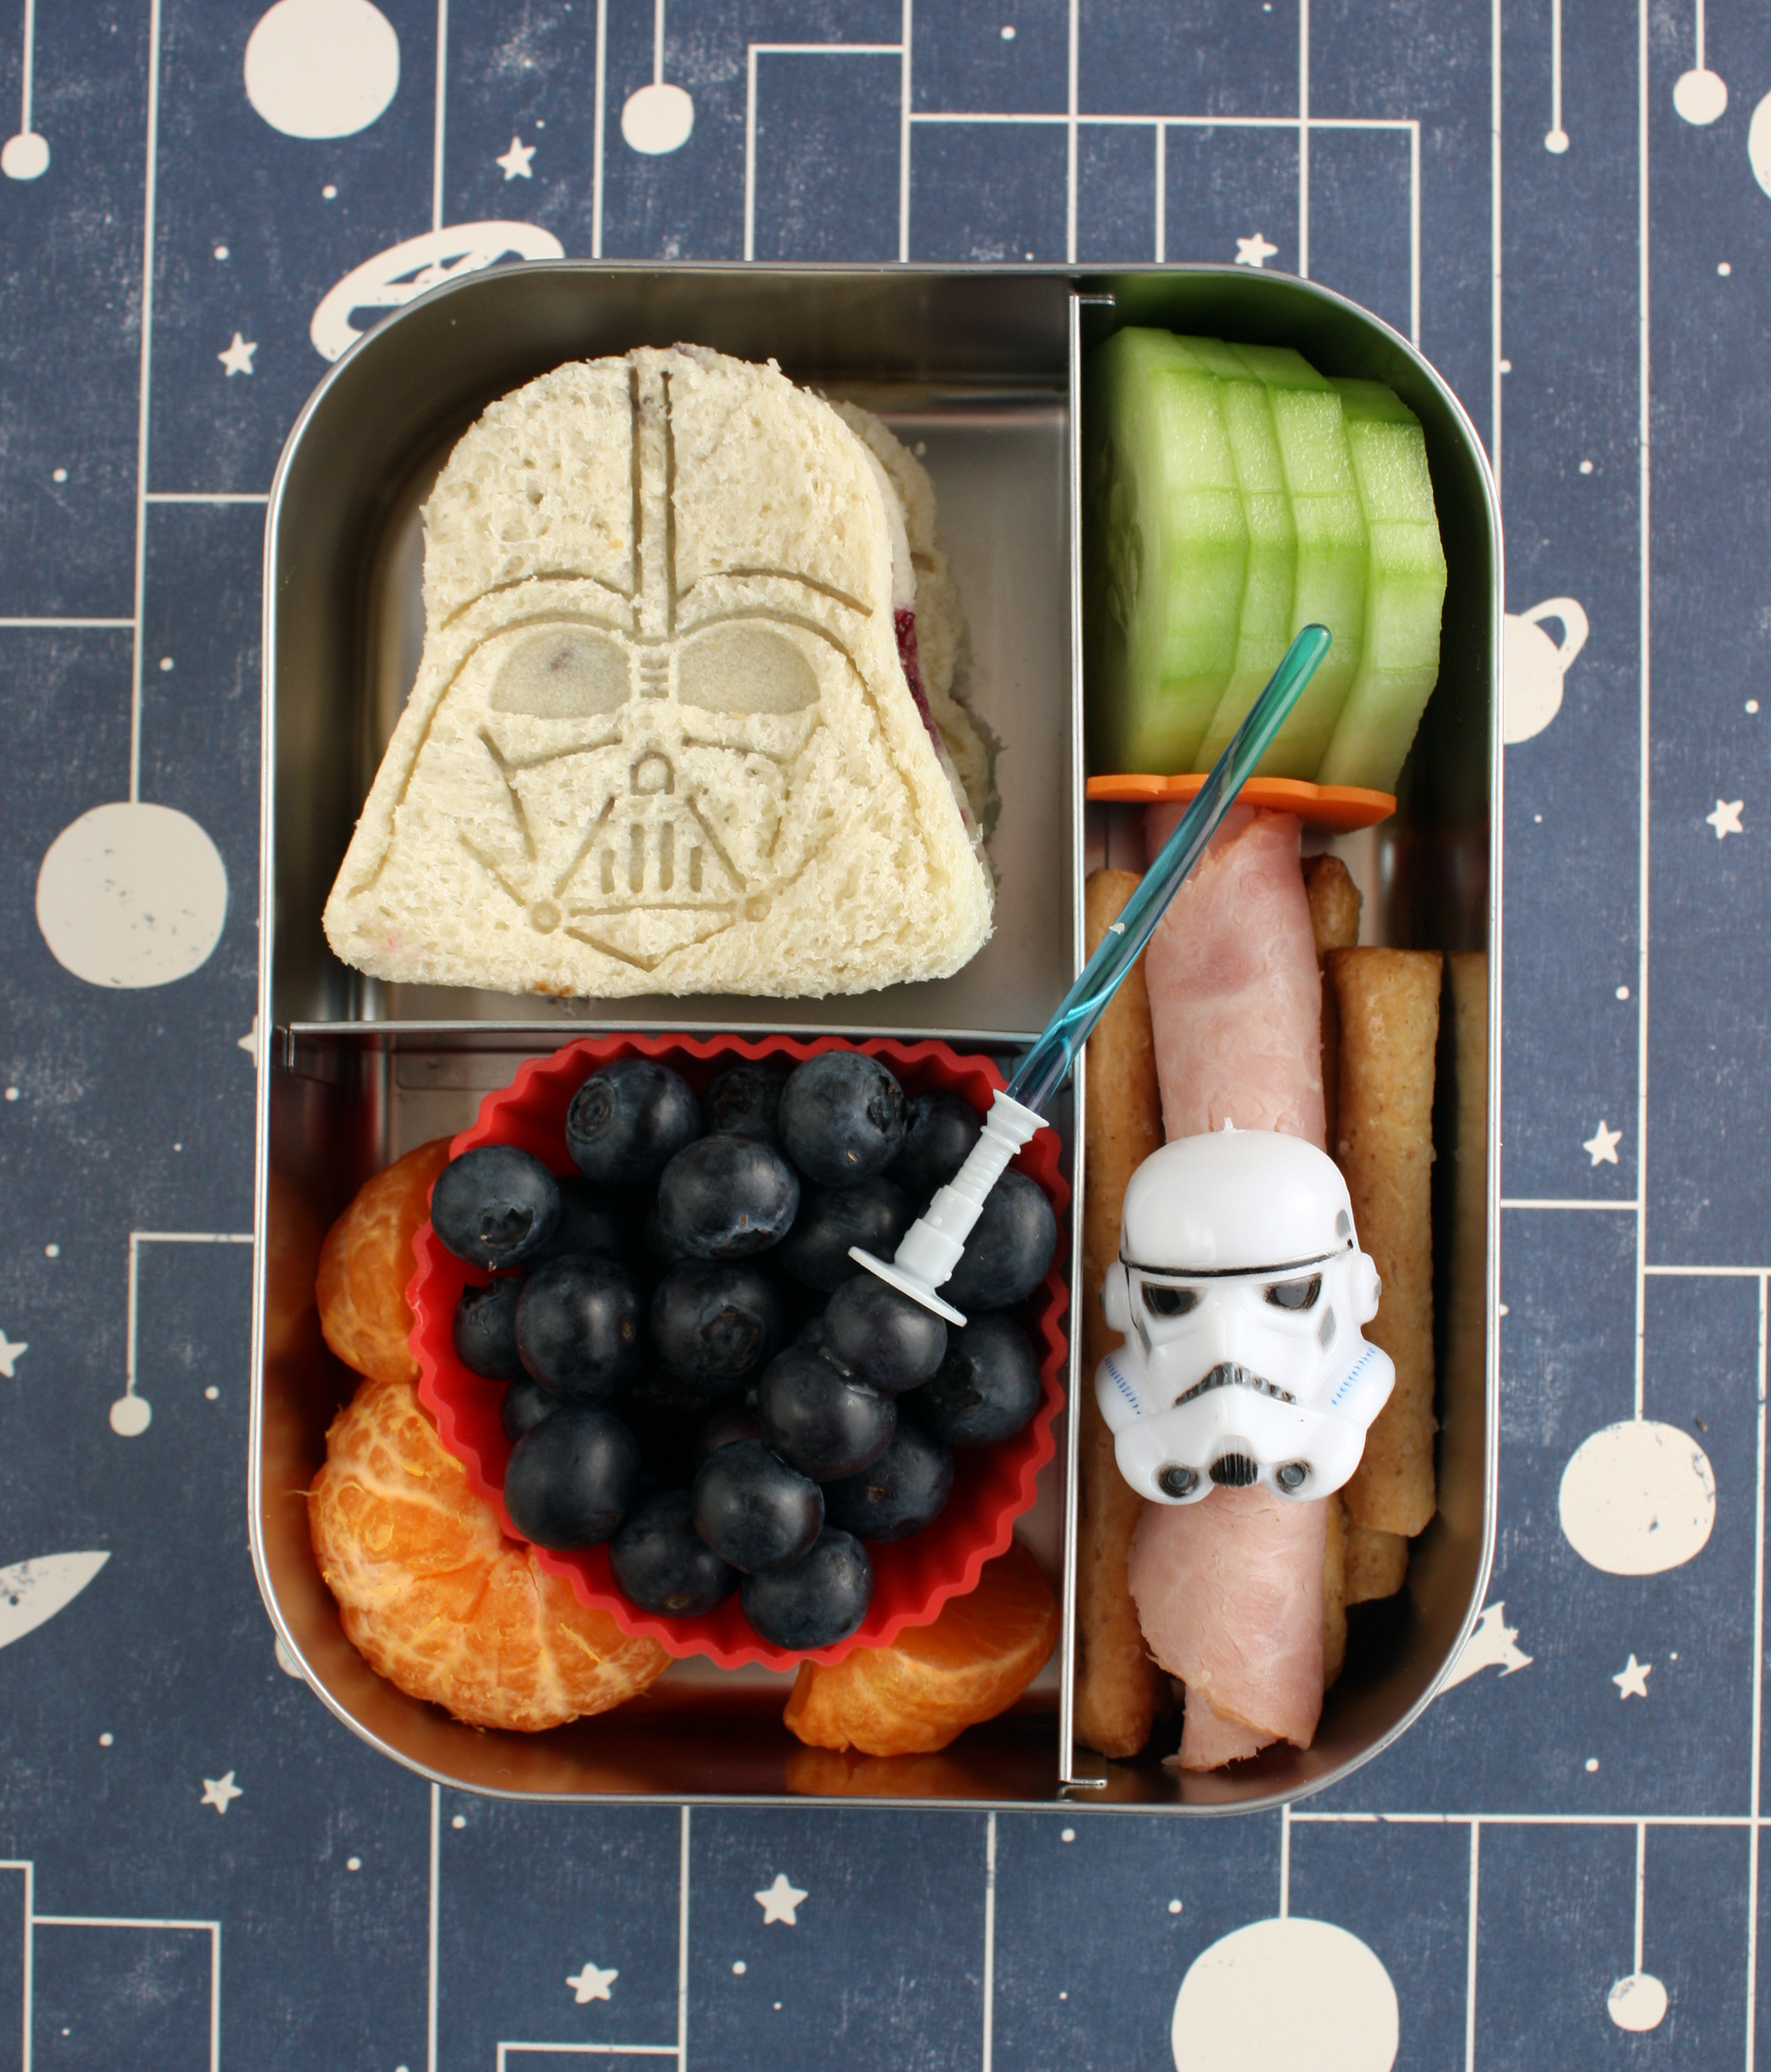 bento box star wars darth vader sandwich